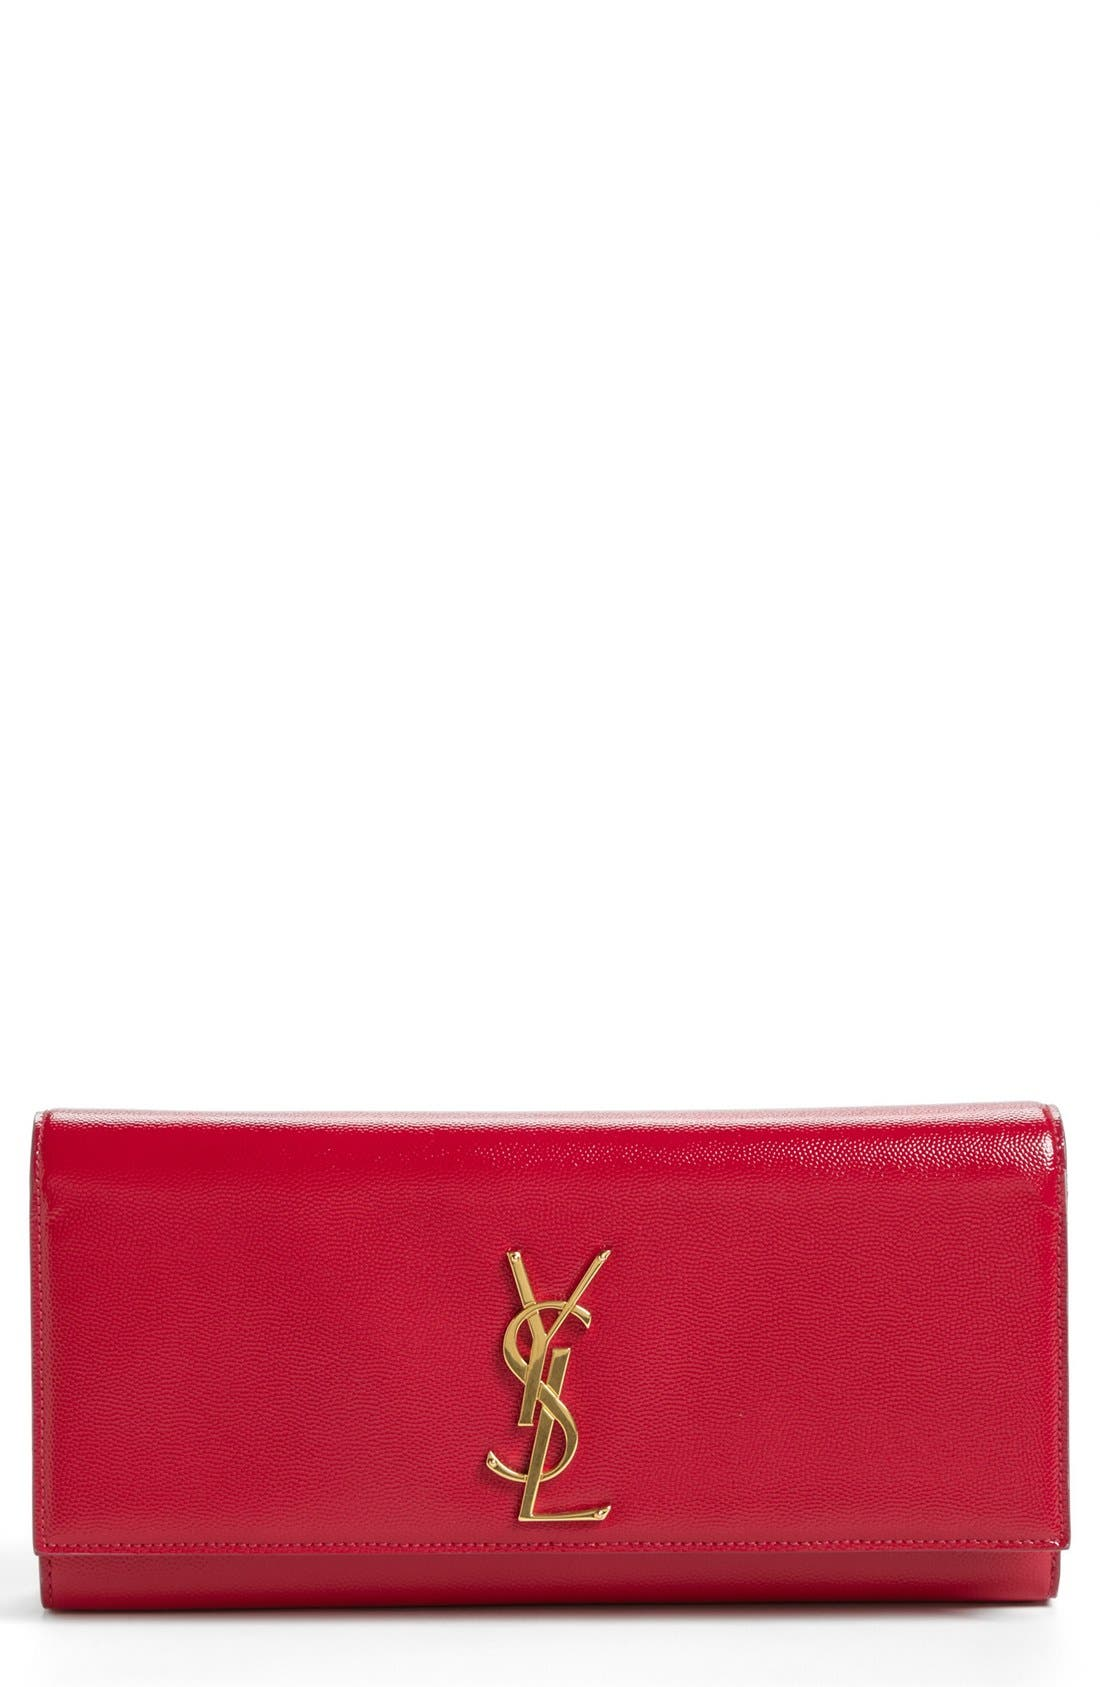 Main Image - Saint Laurent 'Cassandre - Vernis' Leather Clutch